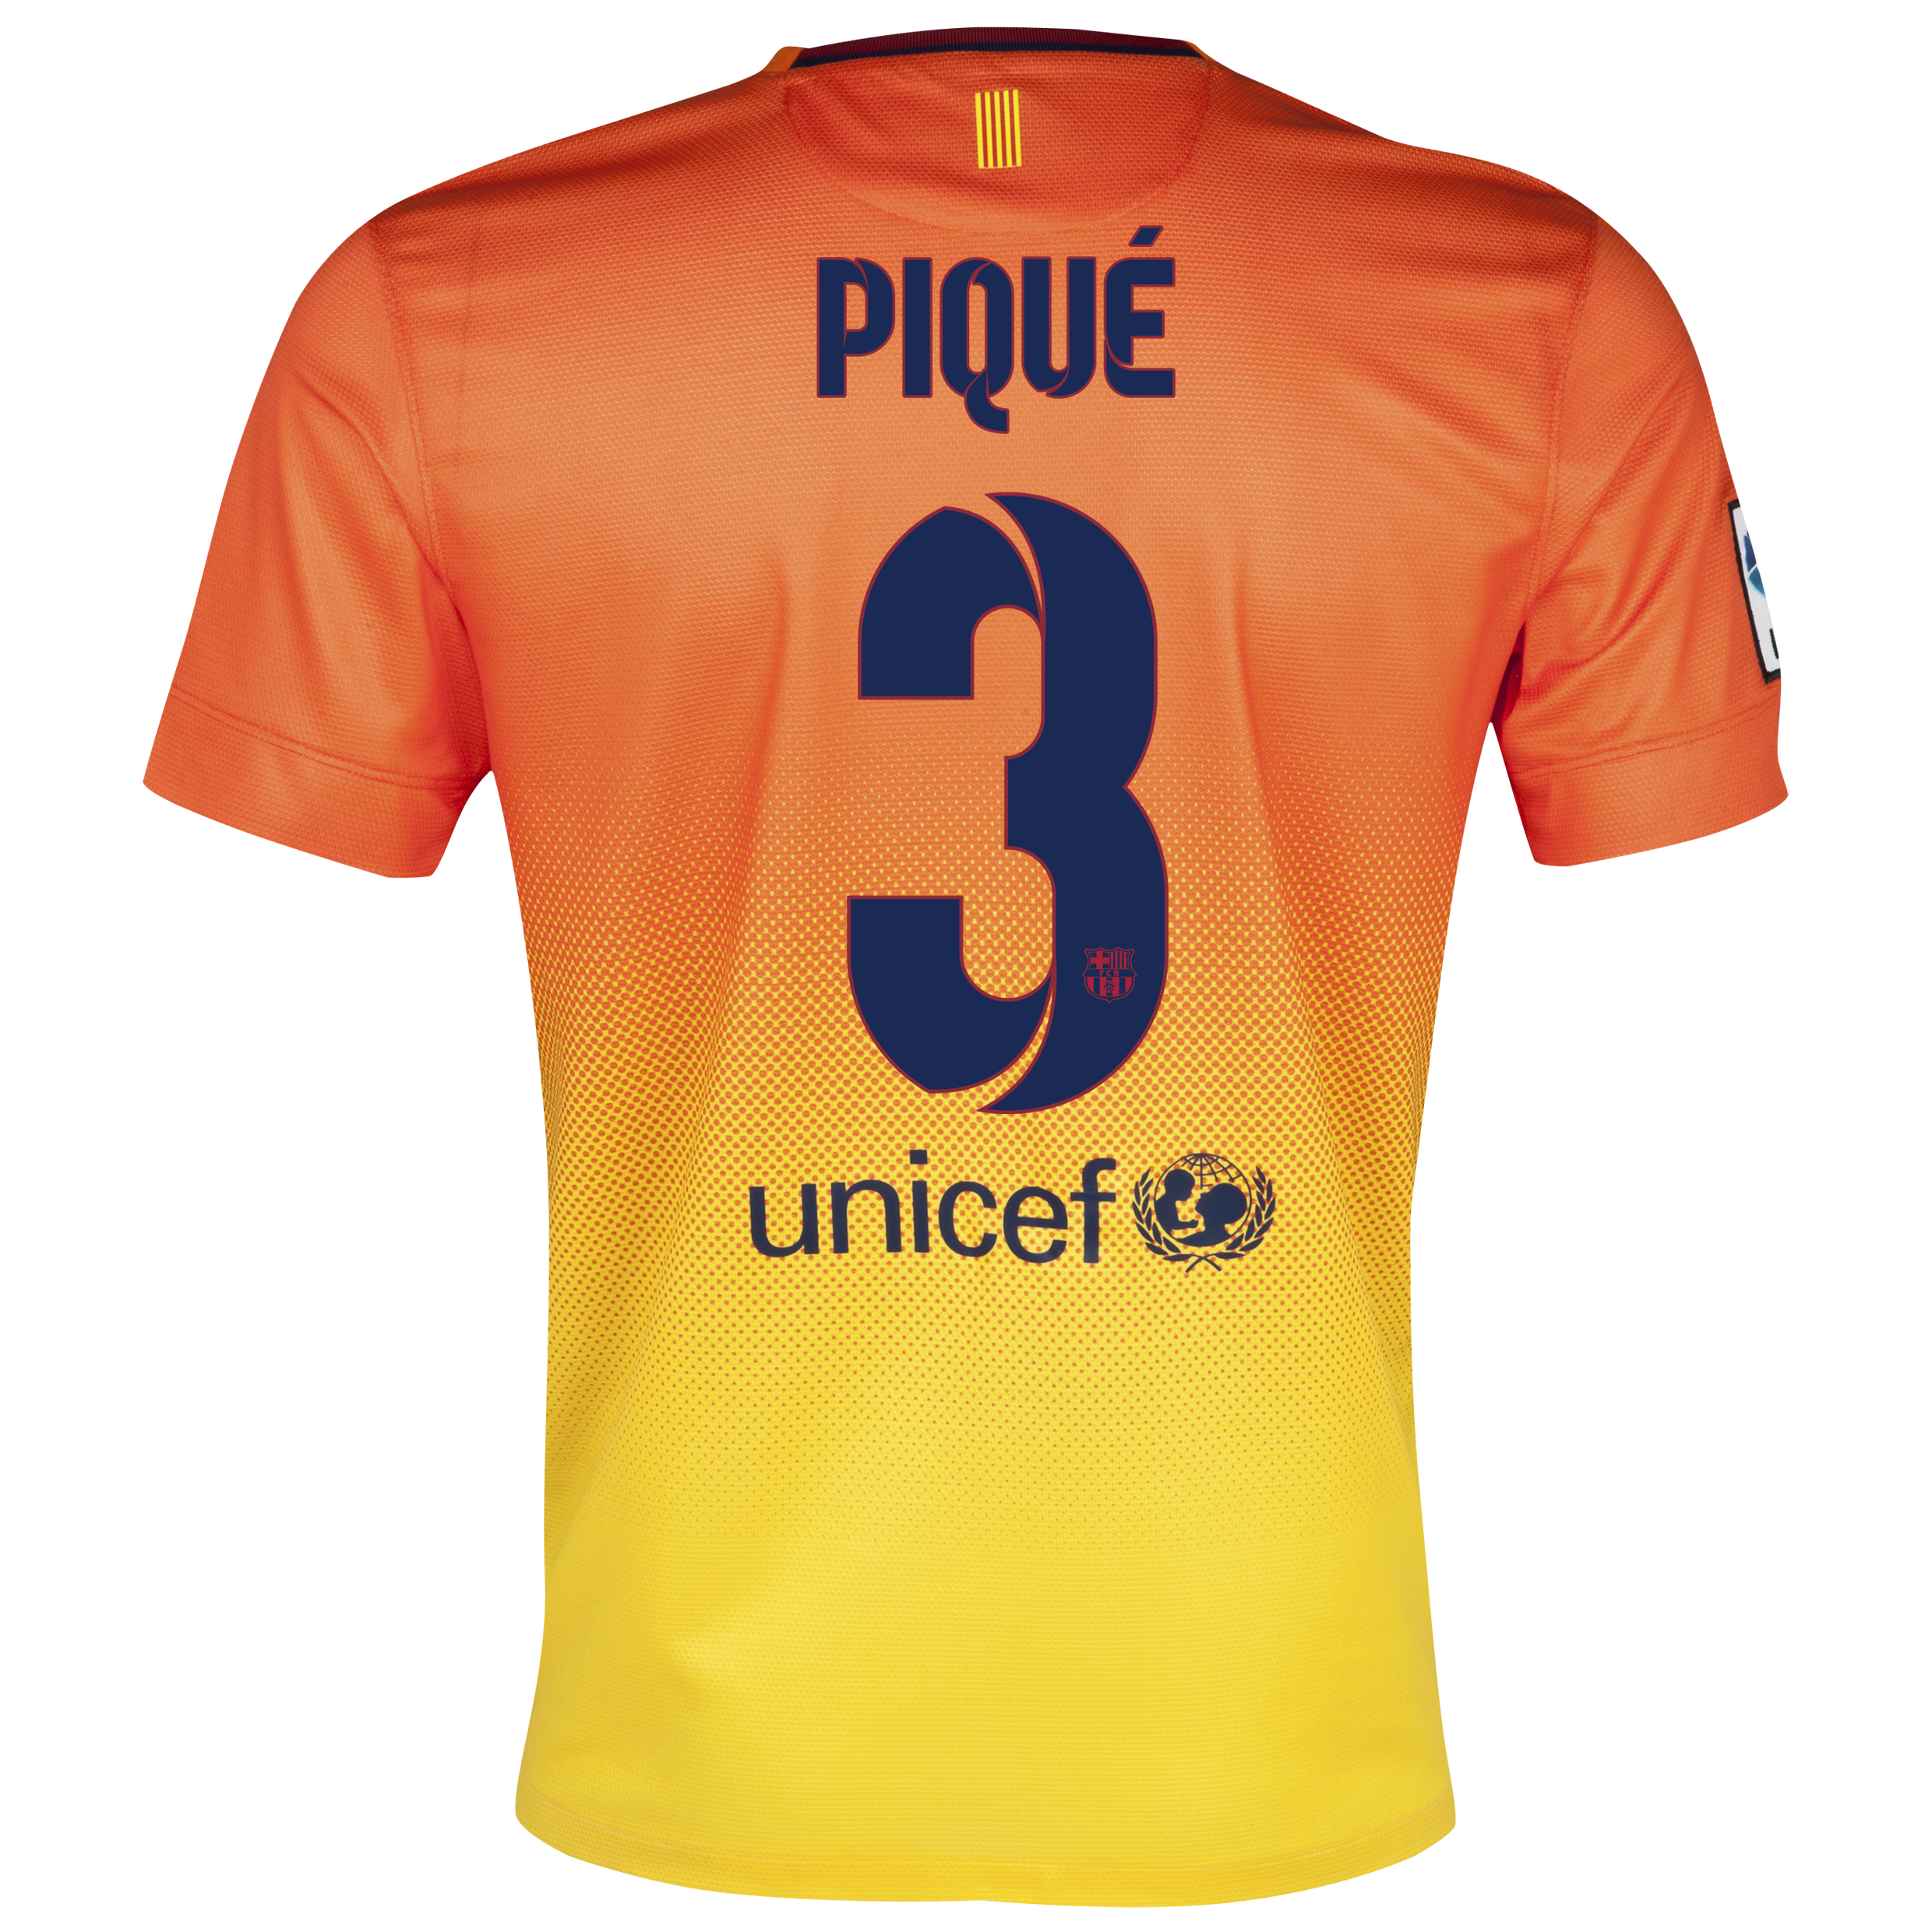 Barcelona Away Shirt 2012/13  - Kids with Pique 3 printing